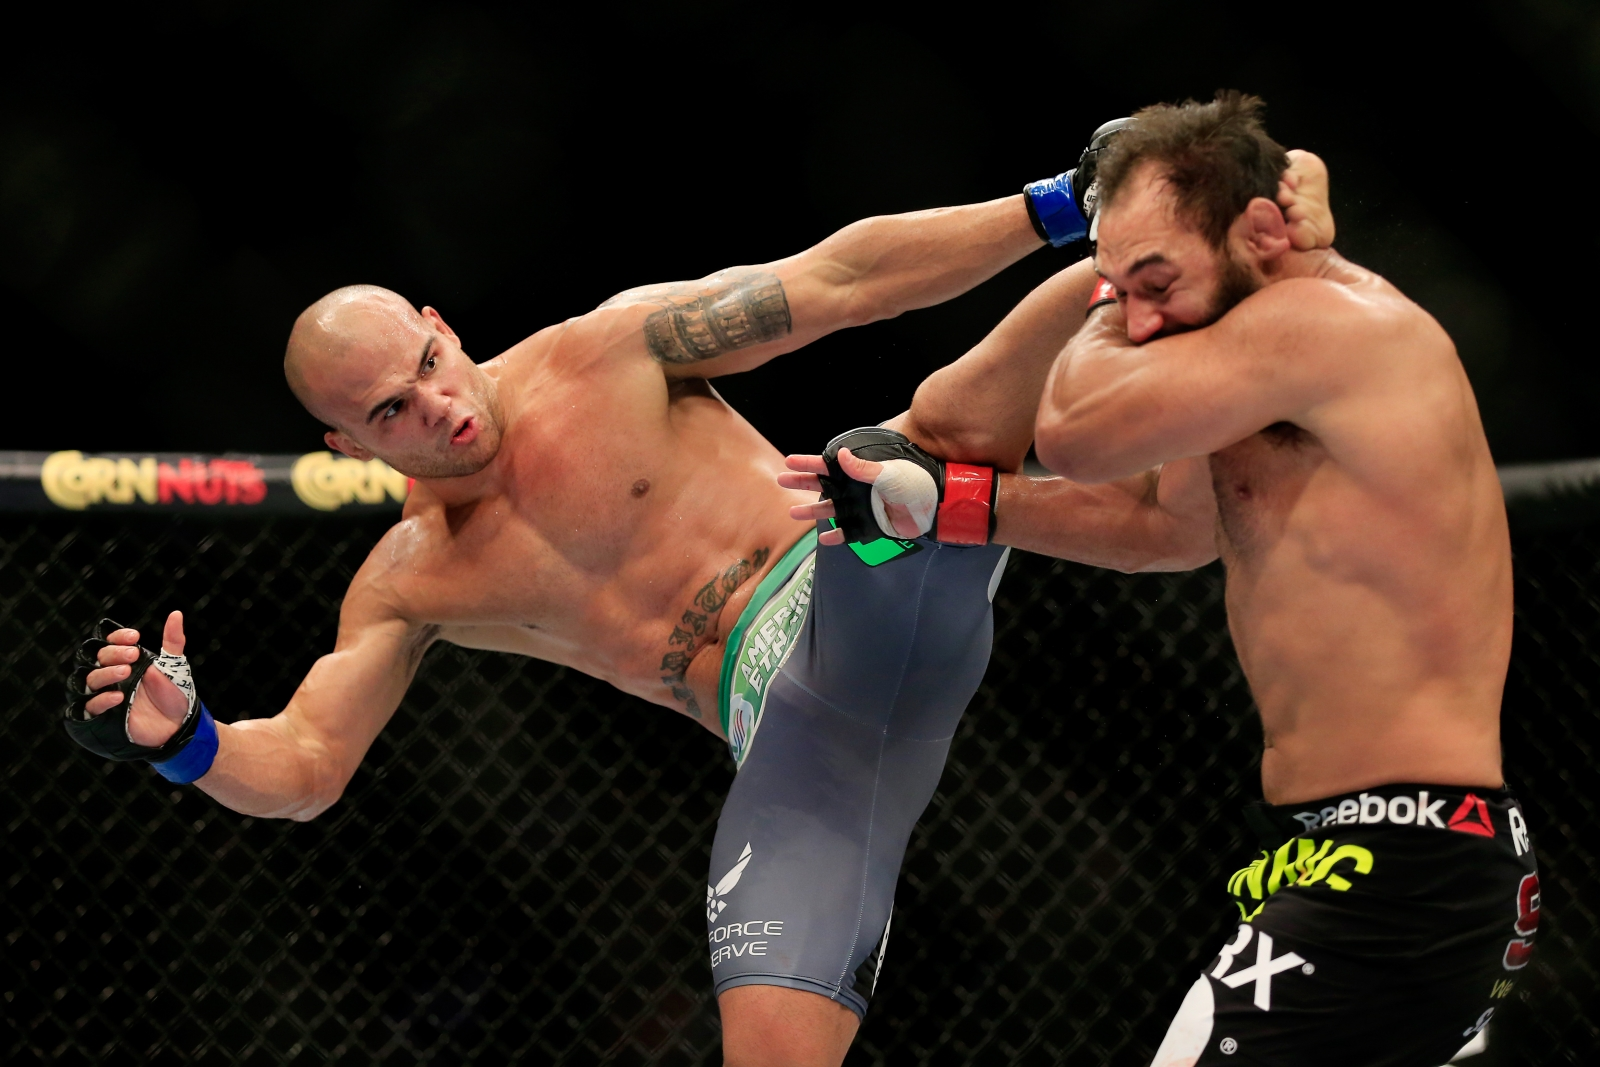 Robbie Lawler vs Johny Hendricks